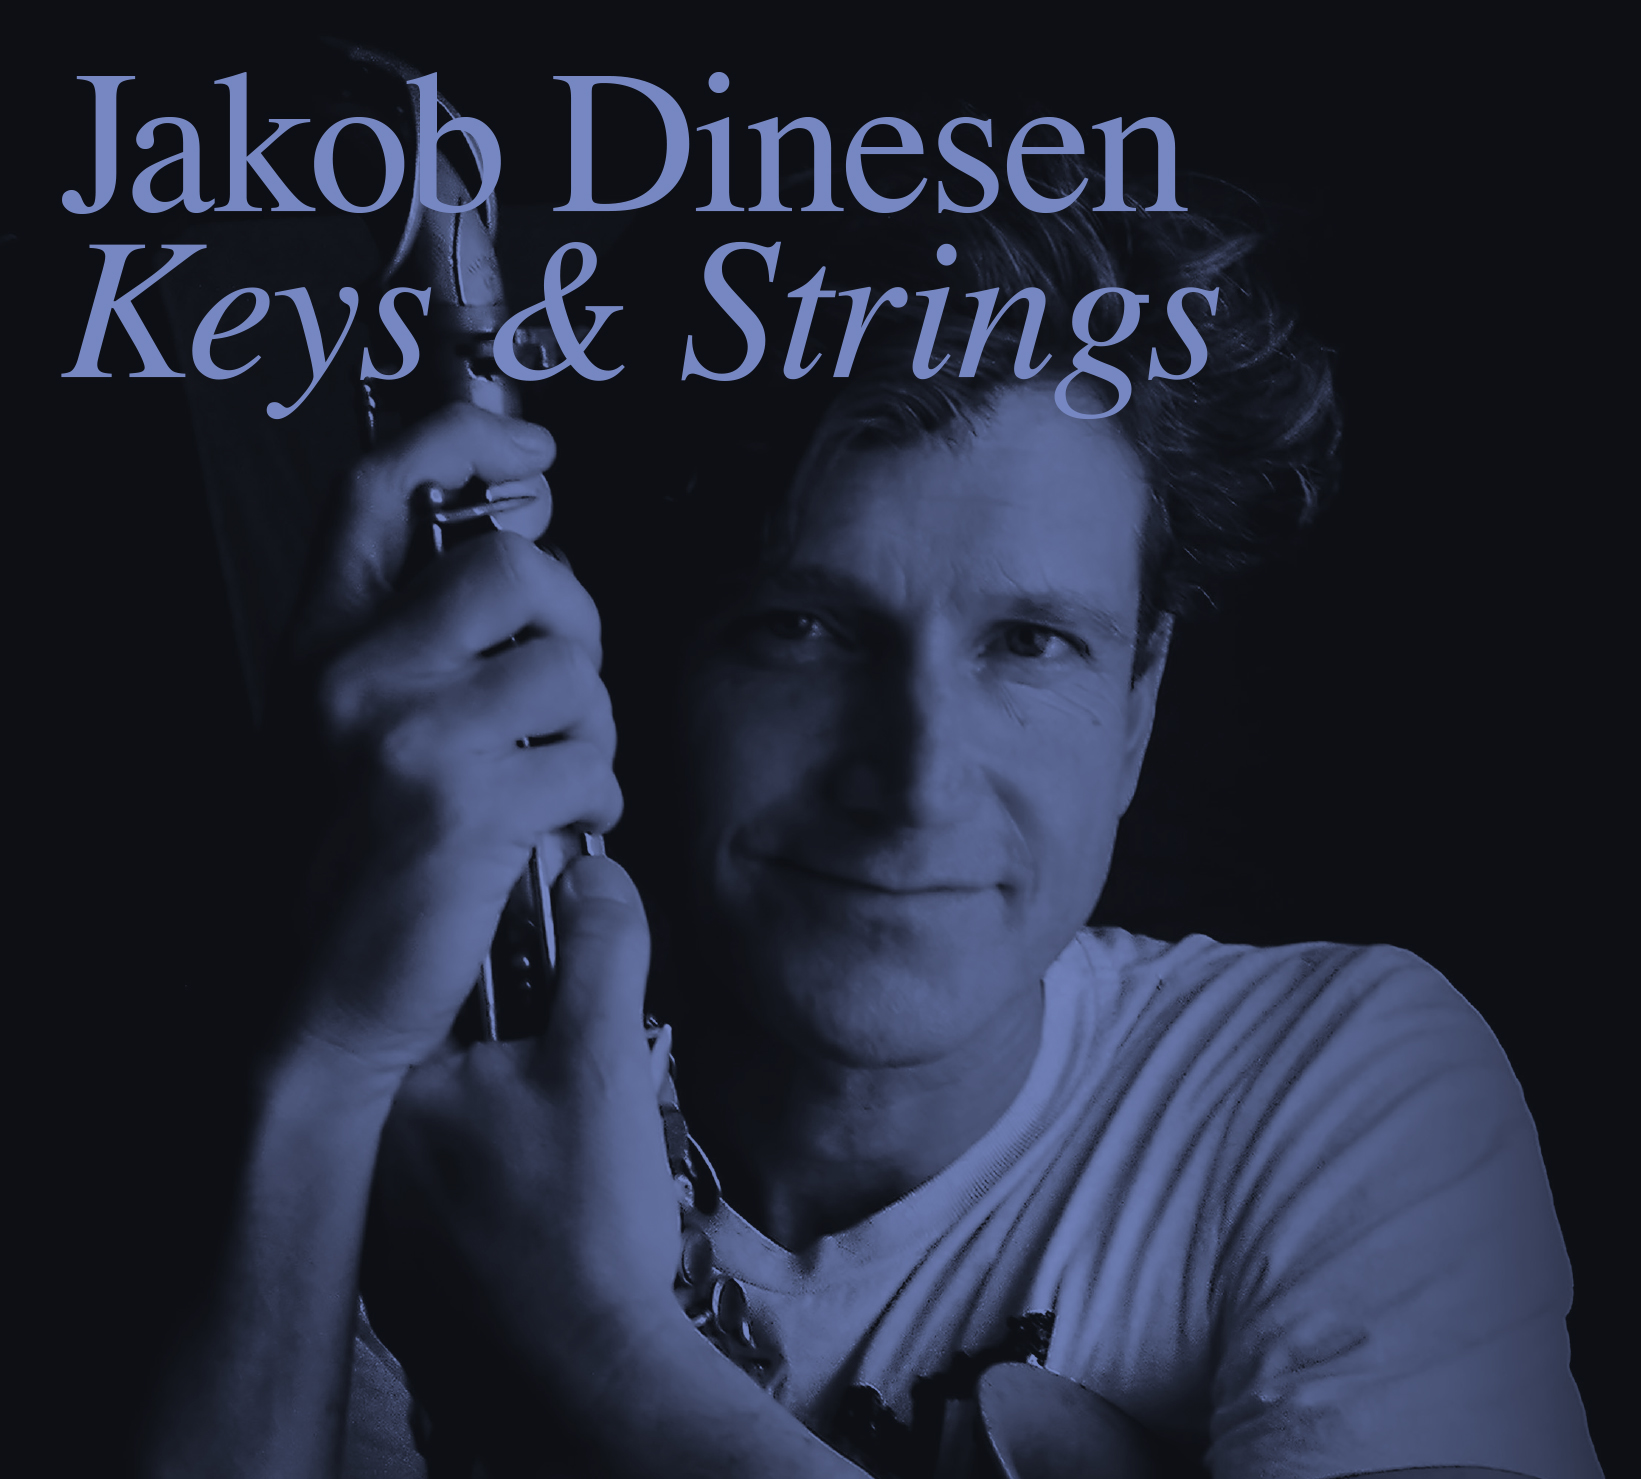 Keys & Strings Quotes